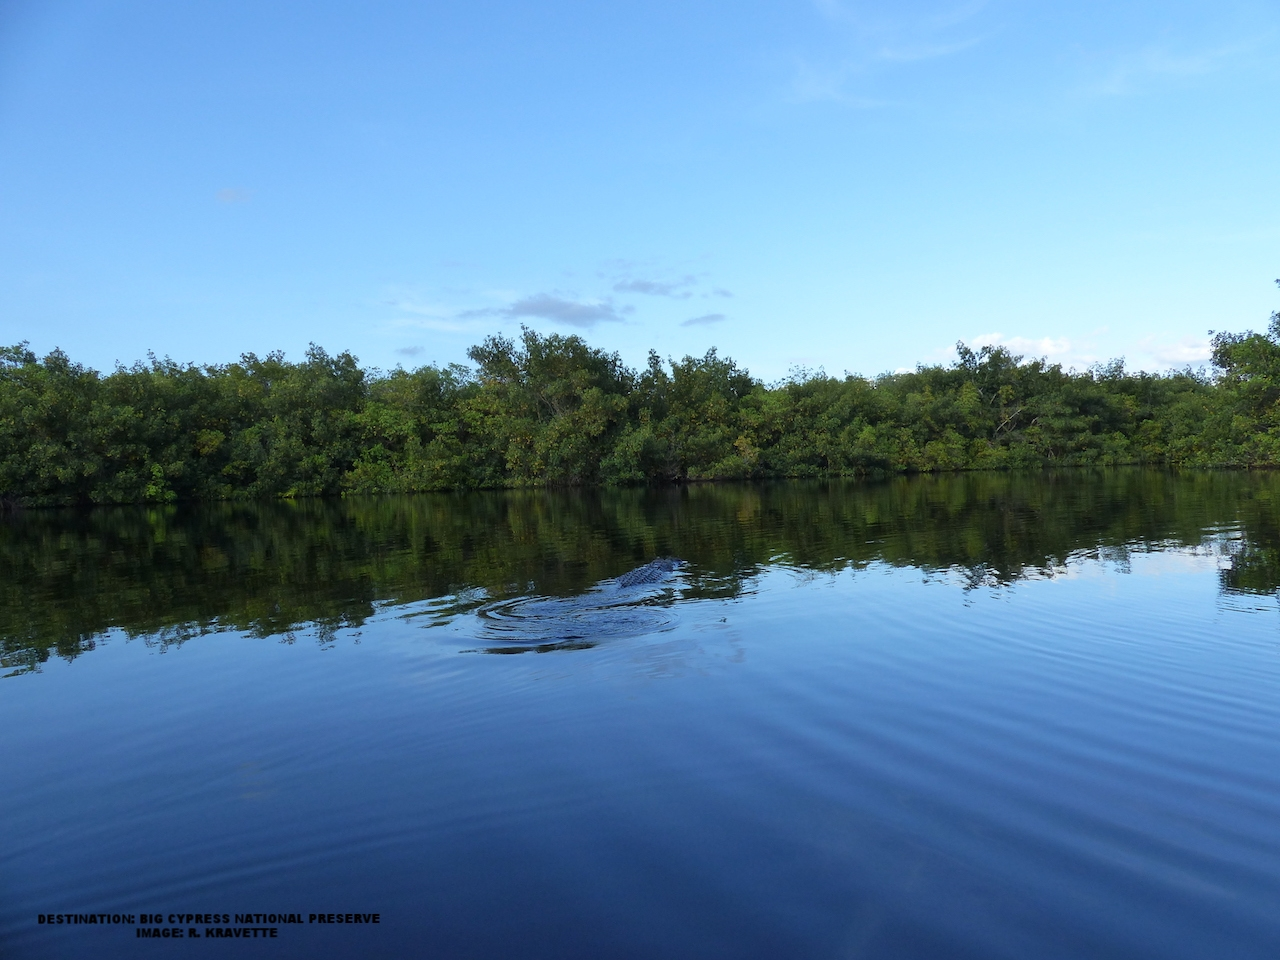 THE BIG 'GATOR SWAM OFF TO CHECK OUT THE REST OF HIS TERRITORY. THE WATER REGAINED ITS STILLNESS. IMAGE: R KRAVETTE